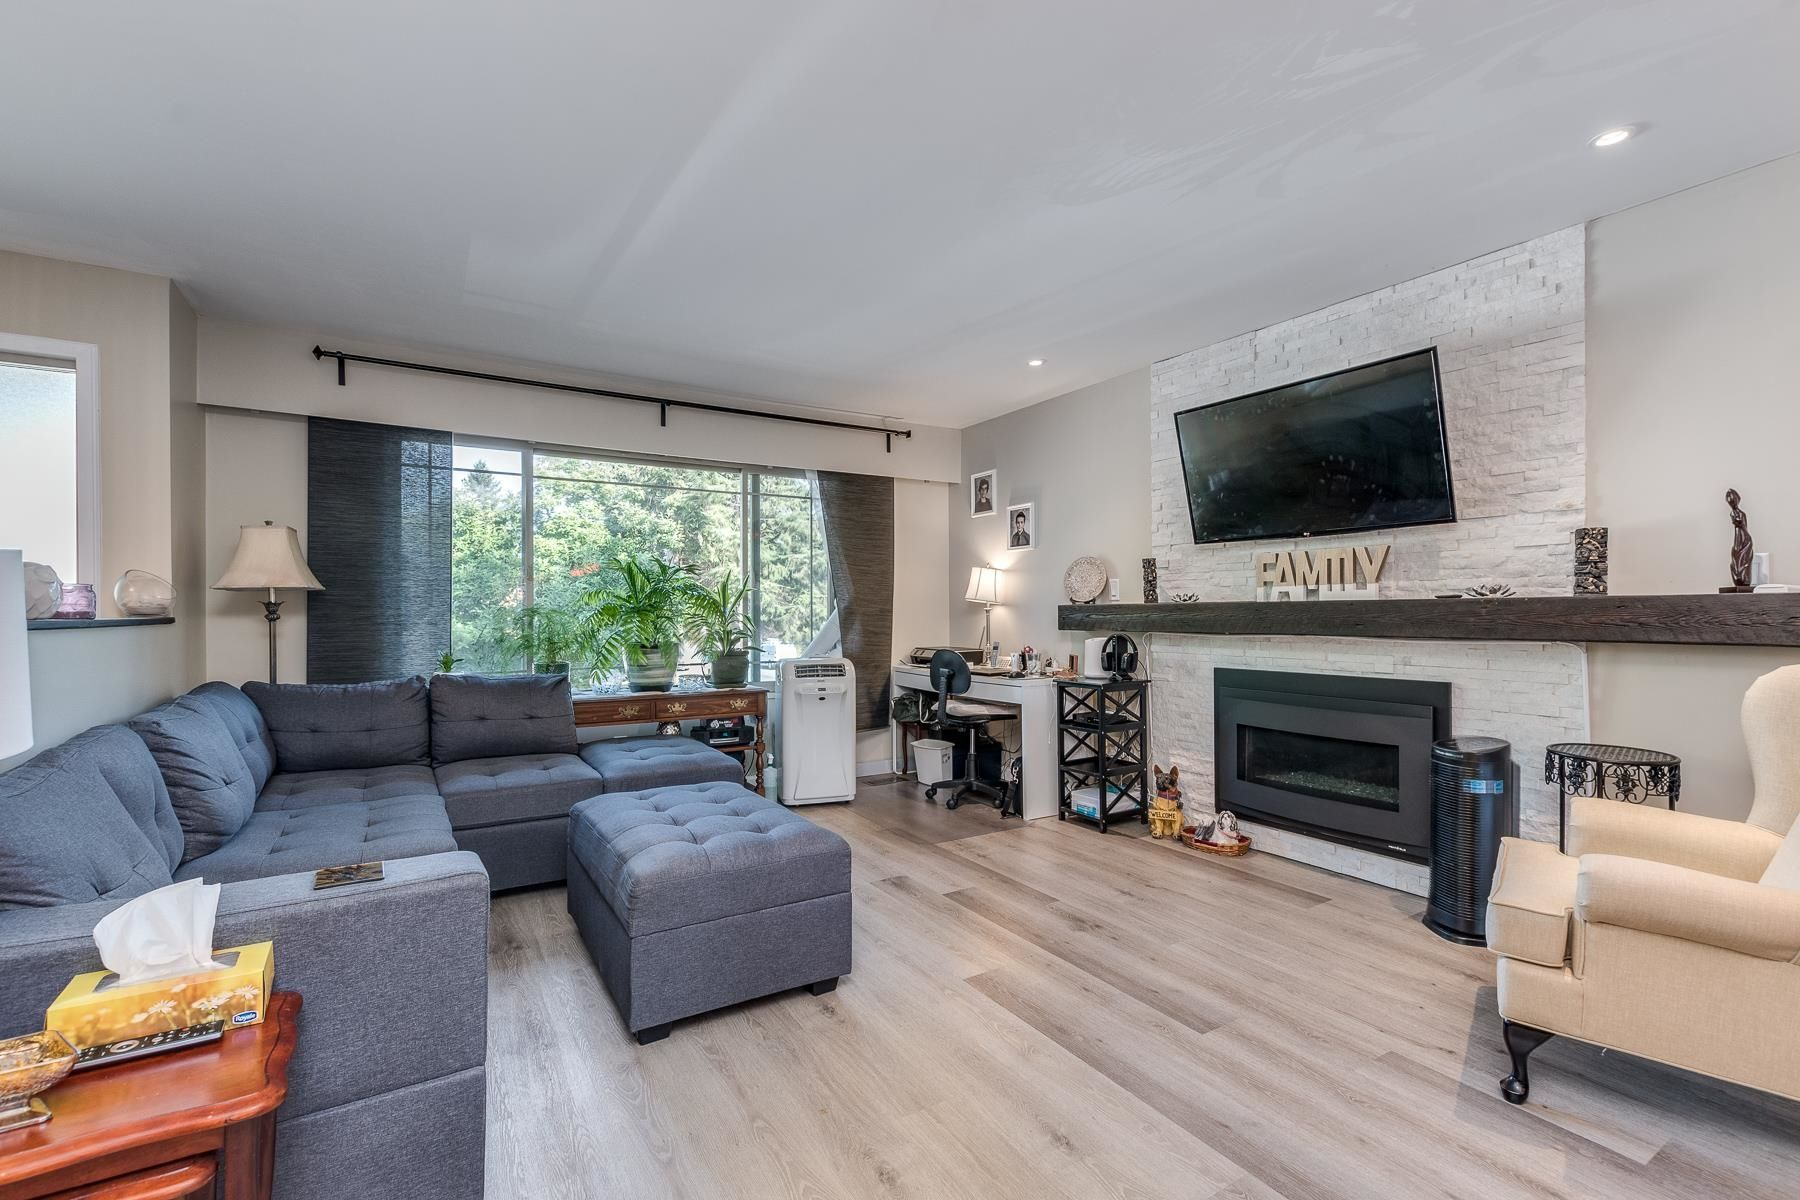 Photo 5: Photos: 3671 SOMERSET Street in Port Coquitlam: Lincoln Park PQ House for sale : MLS®# R2610216